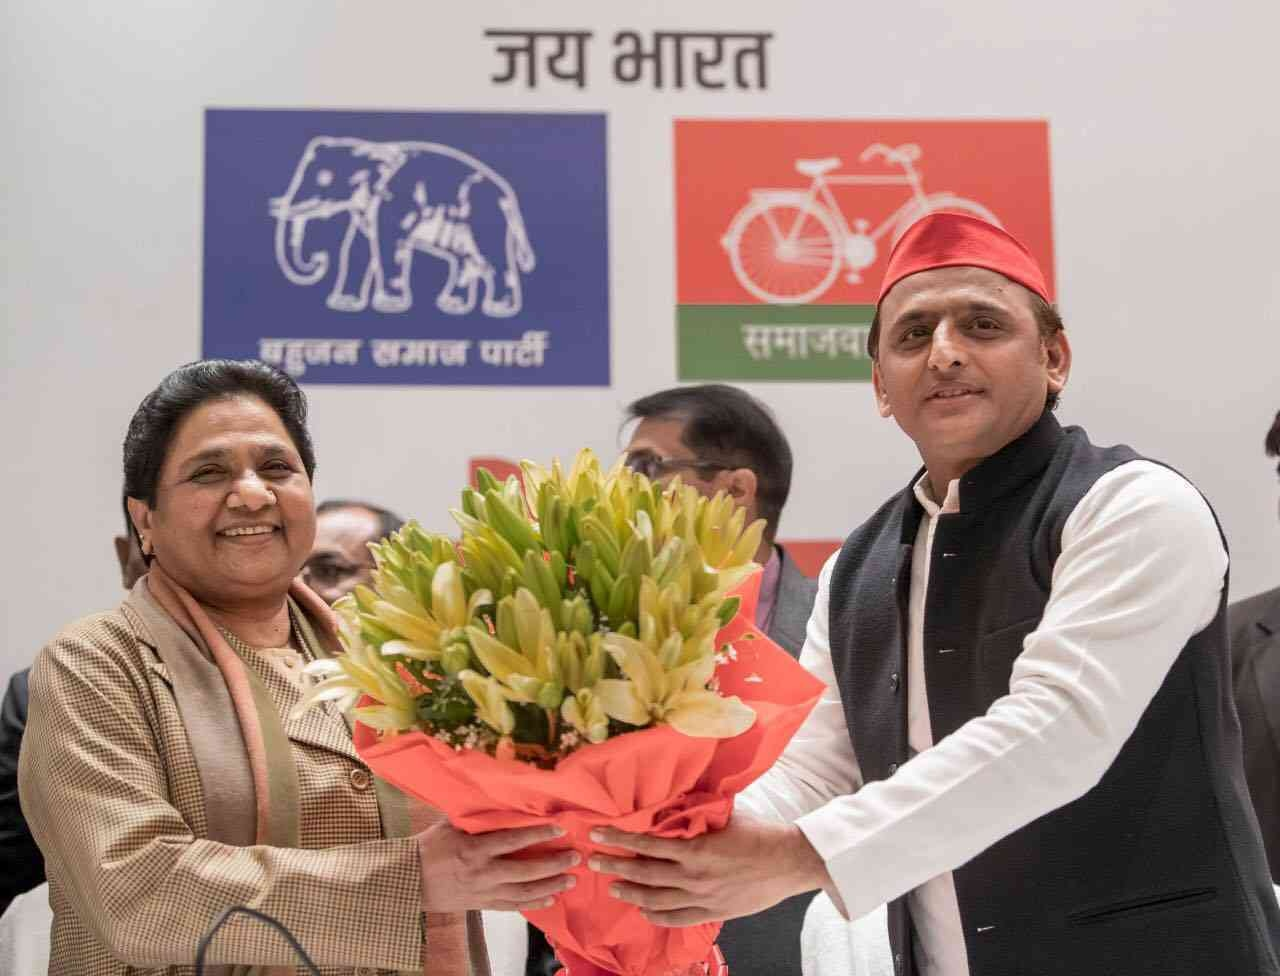 Samajwadi Party leader Akhilesh Yadav hands Bahujan Samaj Party leader Mayawati a bouquet of flowers on January 12, the day the two leaders announced their alliance for the 2019 elections in Lucknow. (Photo credit: Akhilesh Yadav/Facebook)